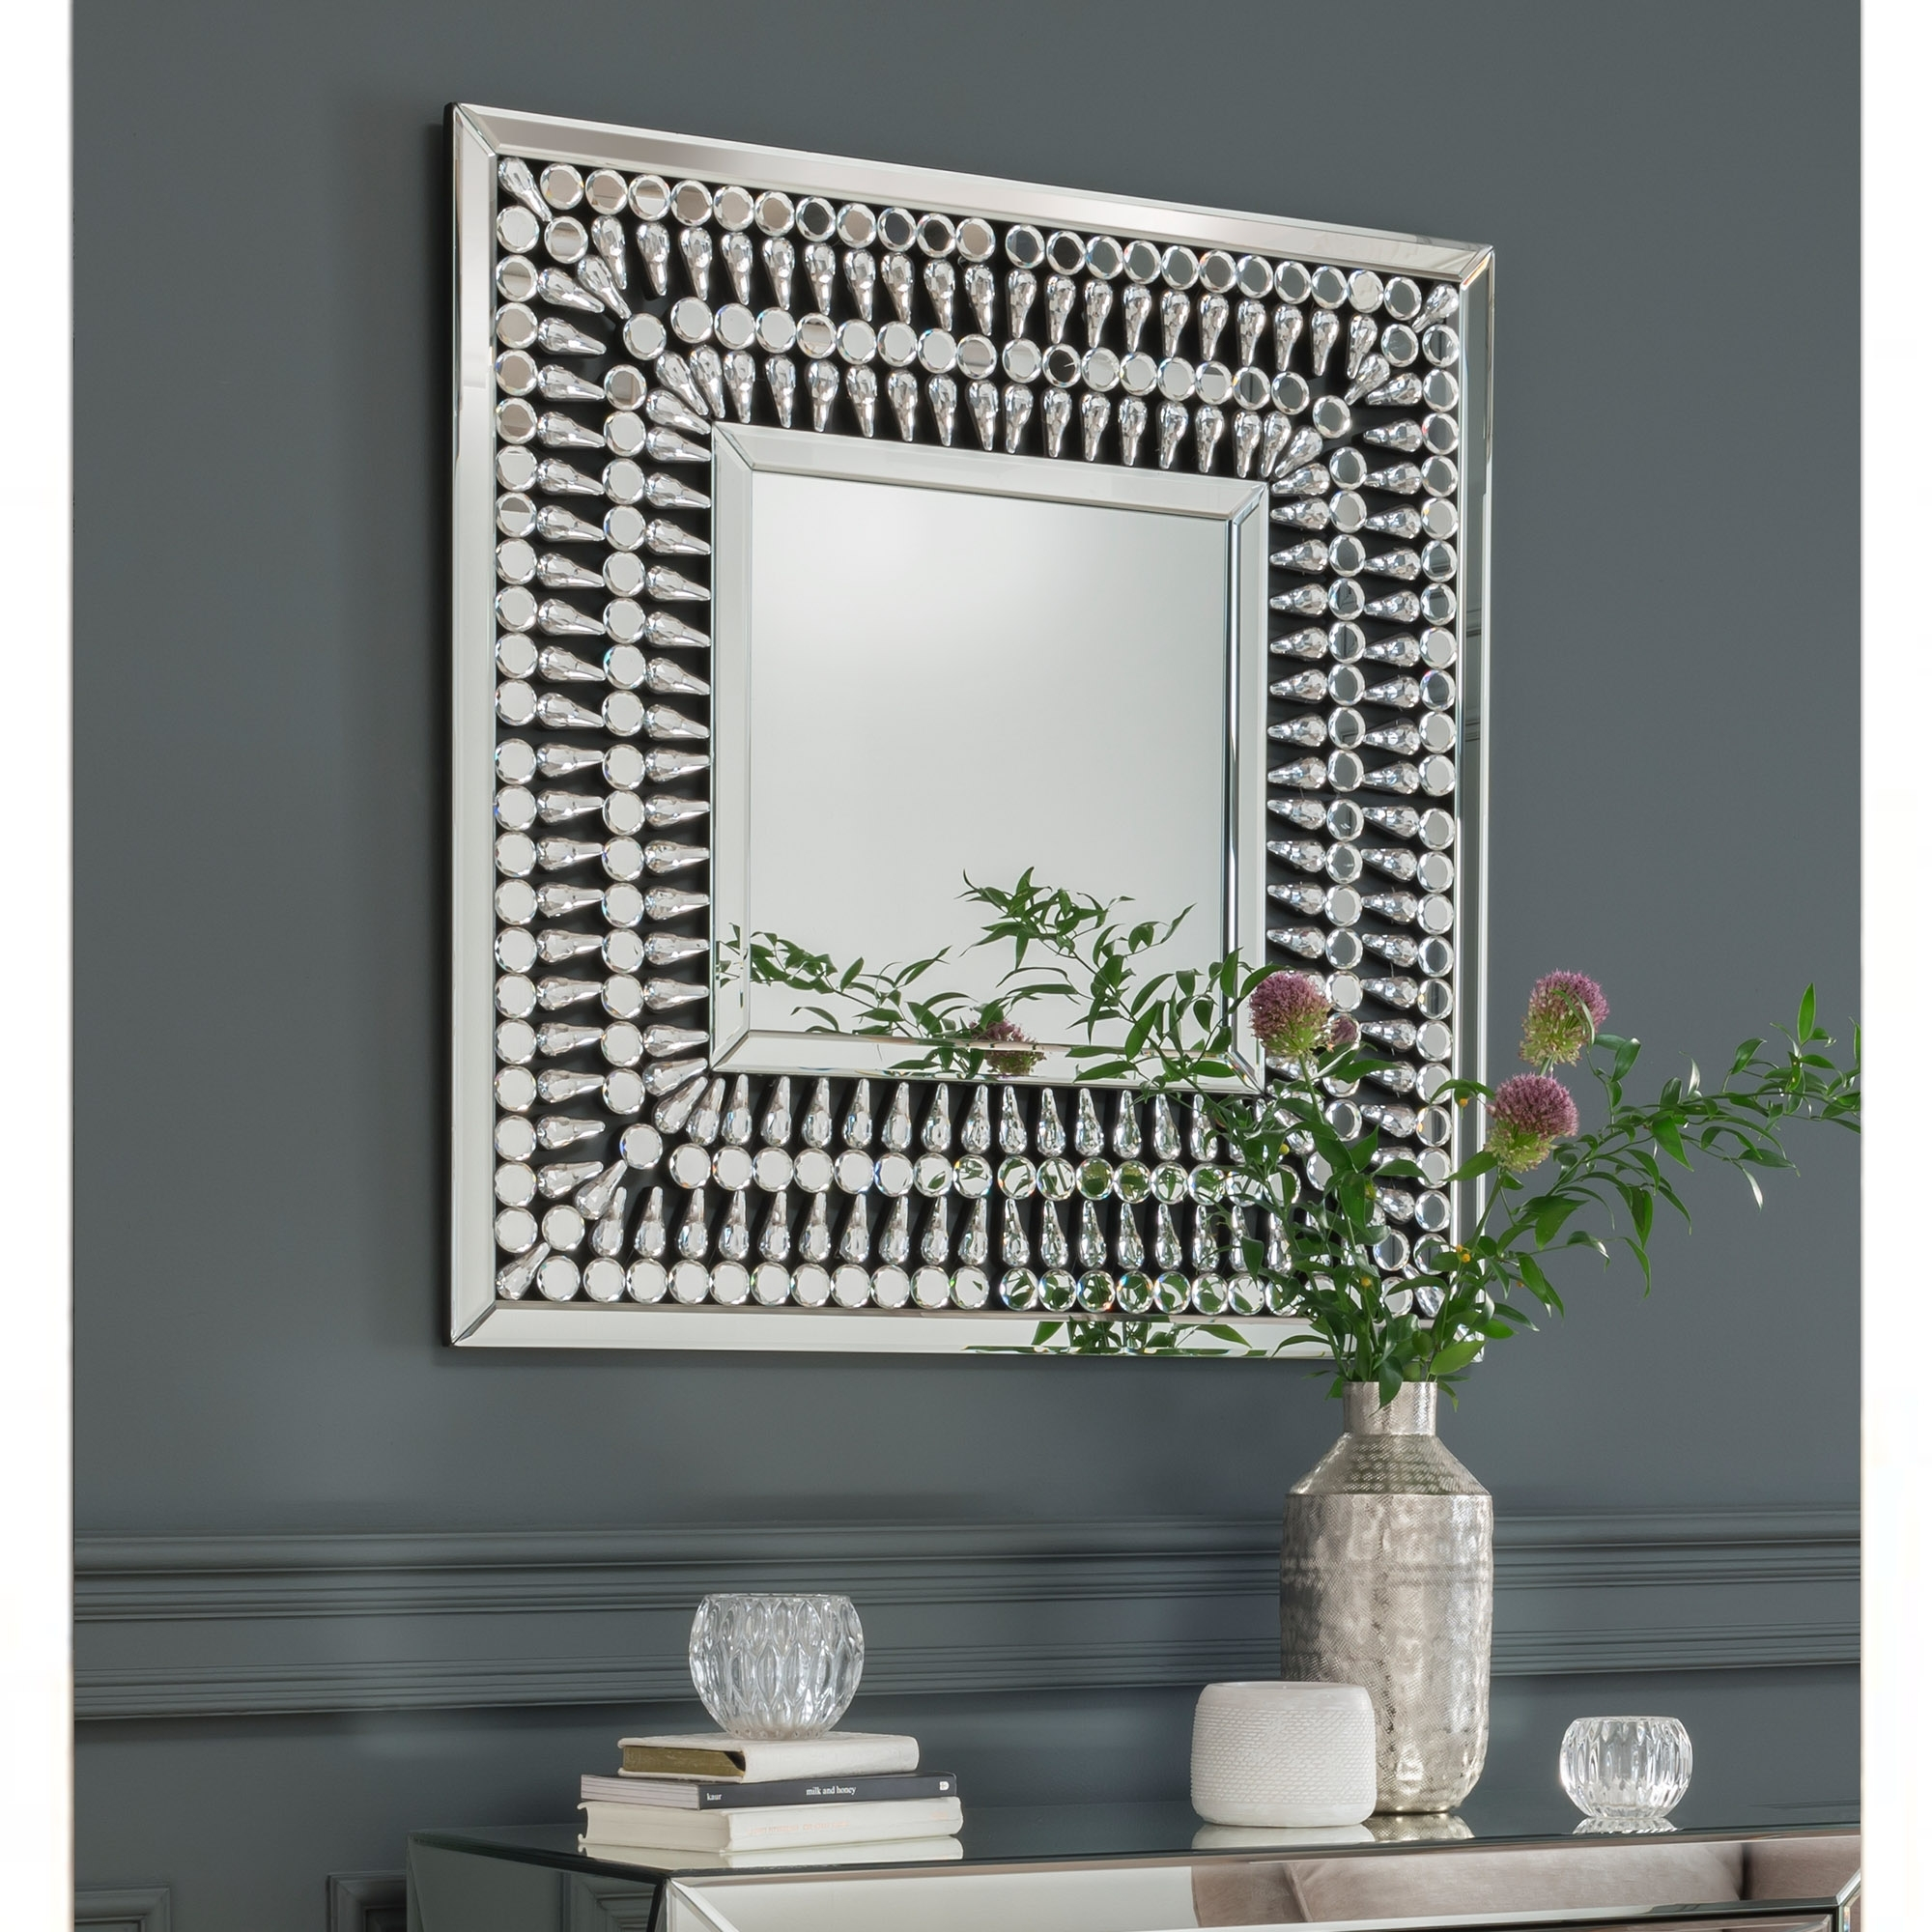 Crystal Mirrored Square Wall Mirror Wall Mirror